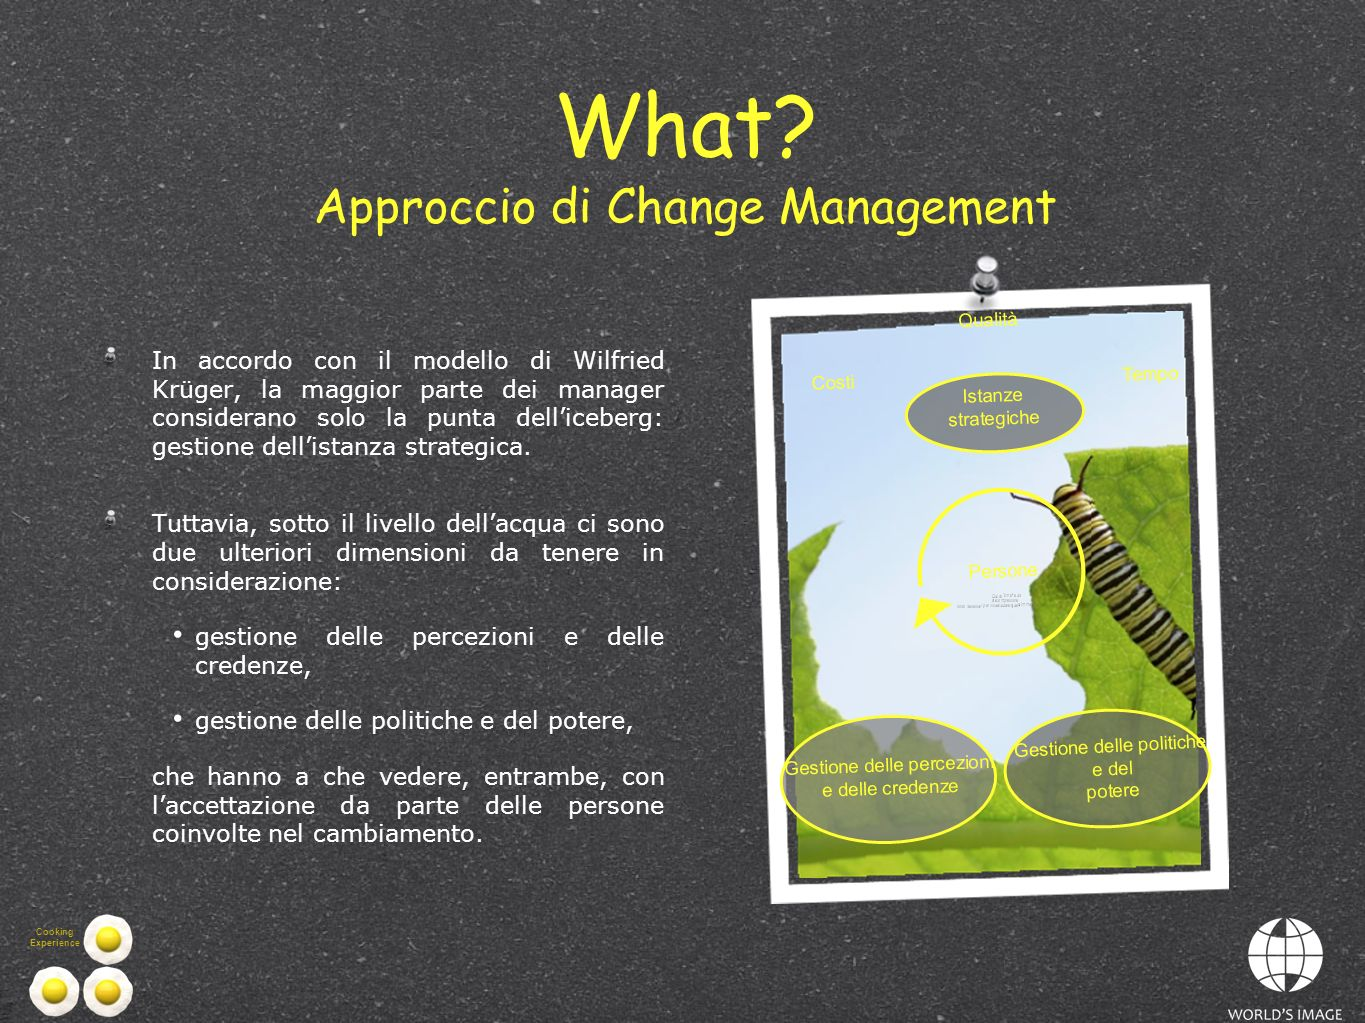 What Approccio di Change Management